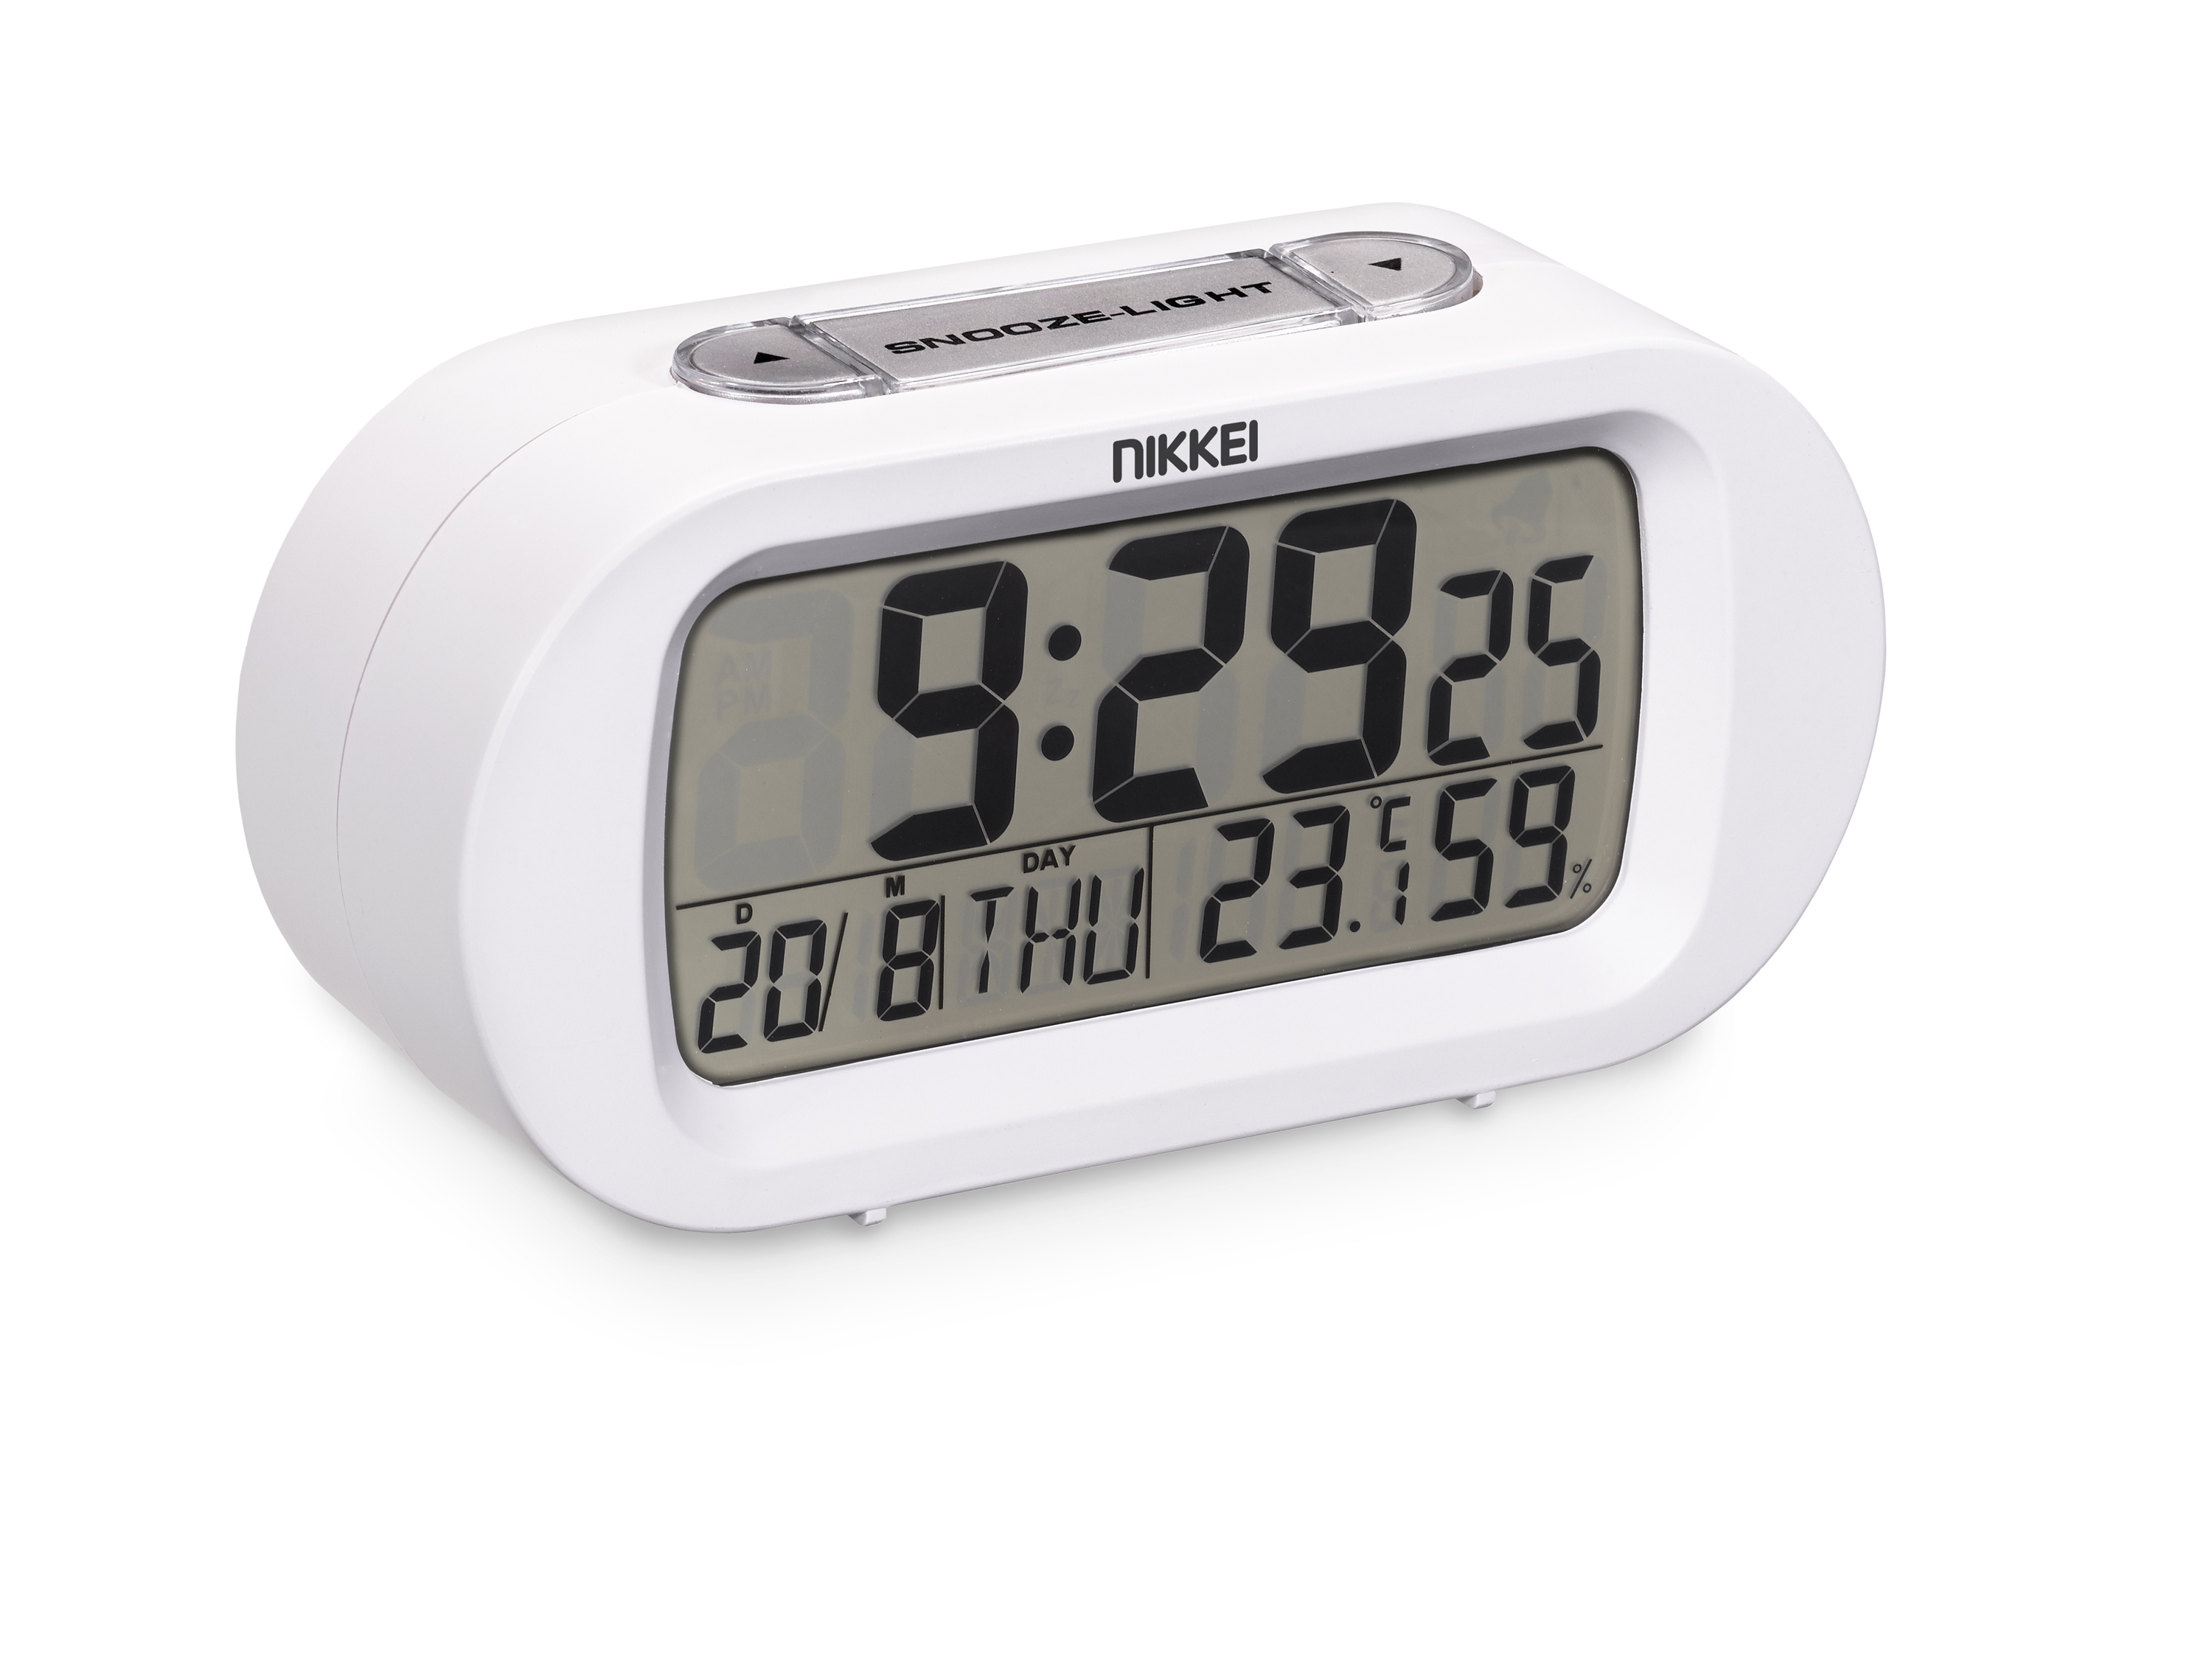 Nikkei NR05WE Alarmclock LCD digital - Snooze, �C/�F, Calender, white